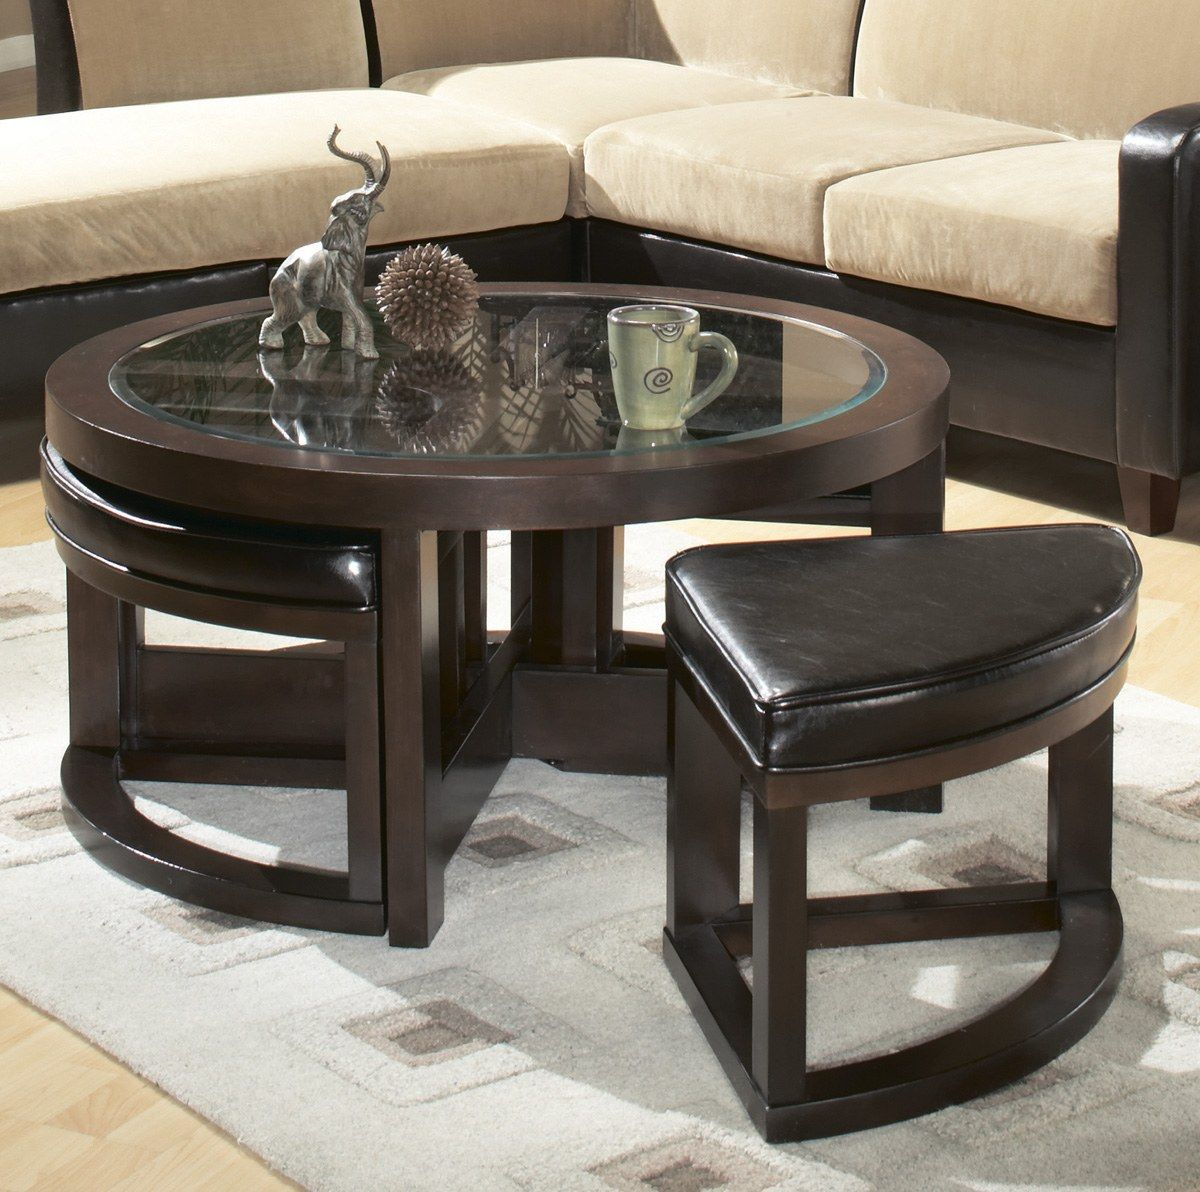 Marion coffee table gallery coffee table design ideas marion coffee table with four wedge shaped stools seamlessly marion coffee table with four wedge shaped geotapseo Image collections